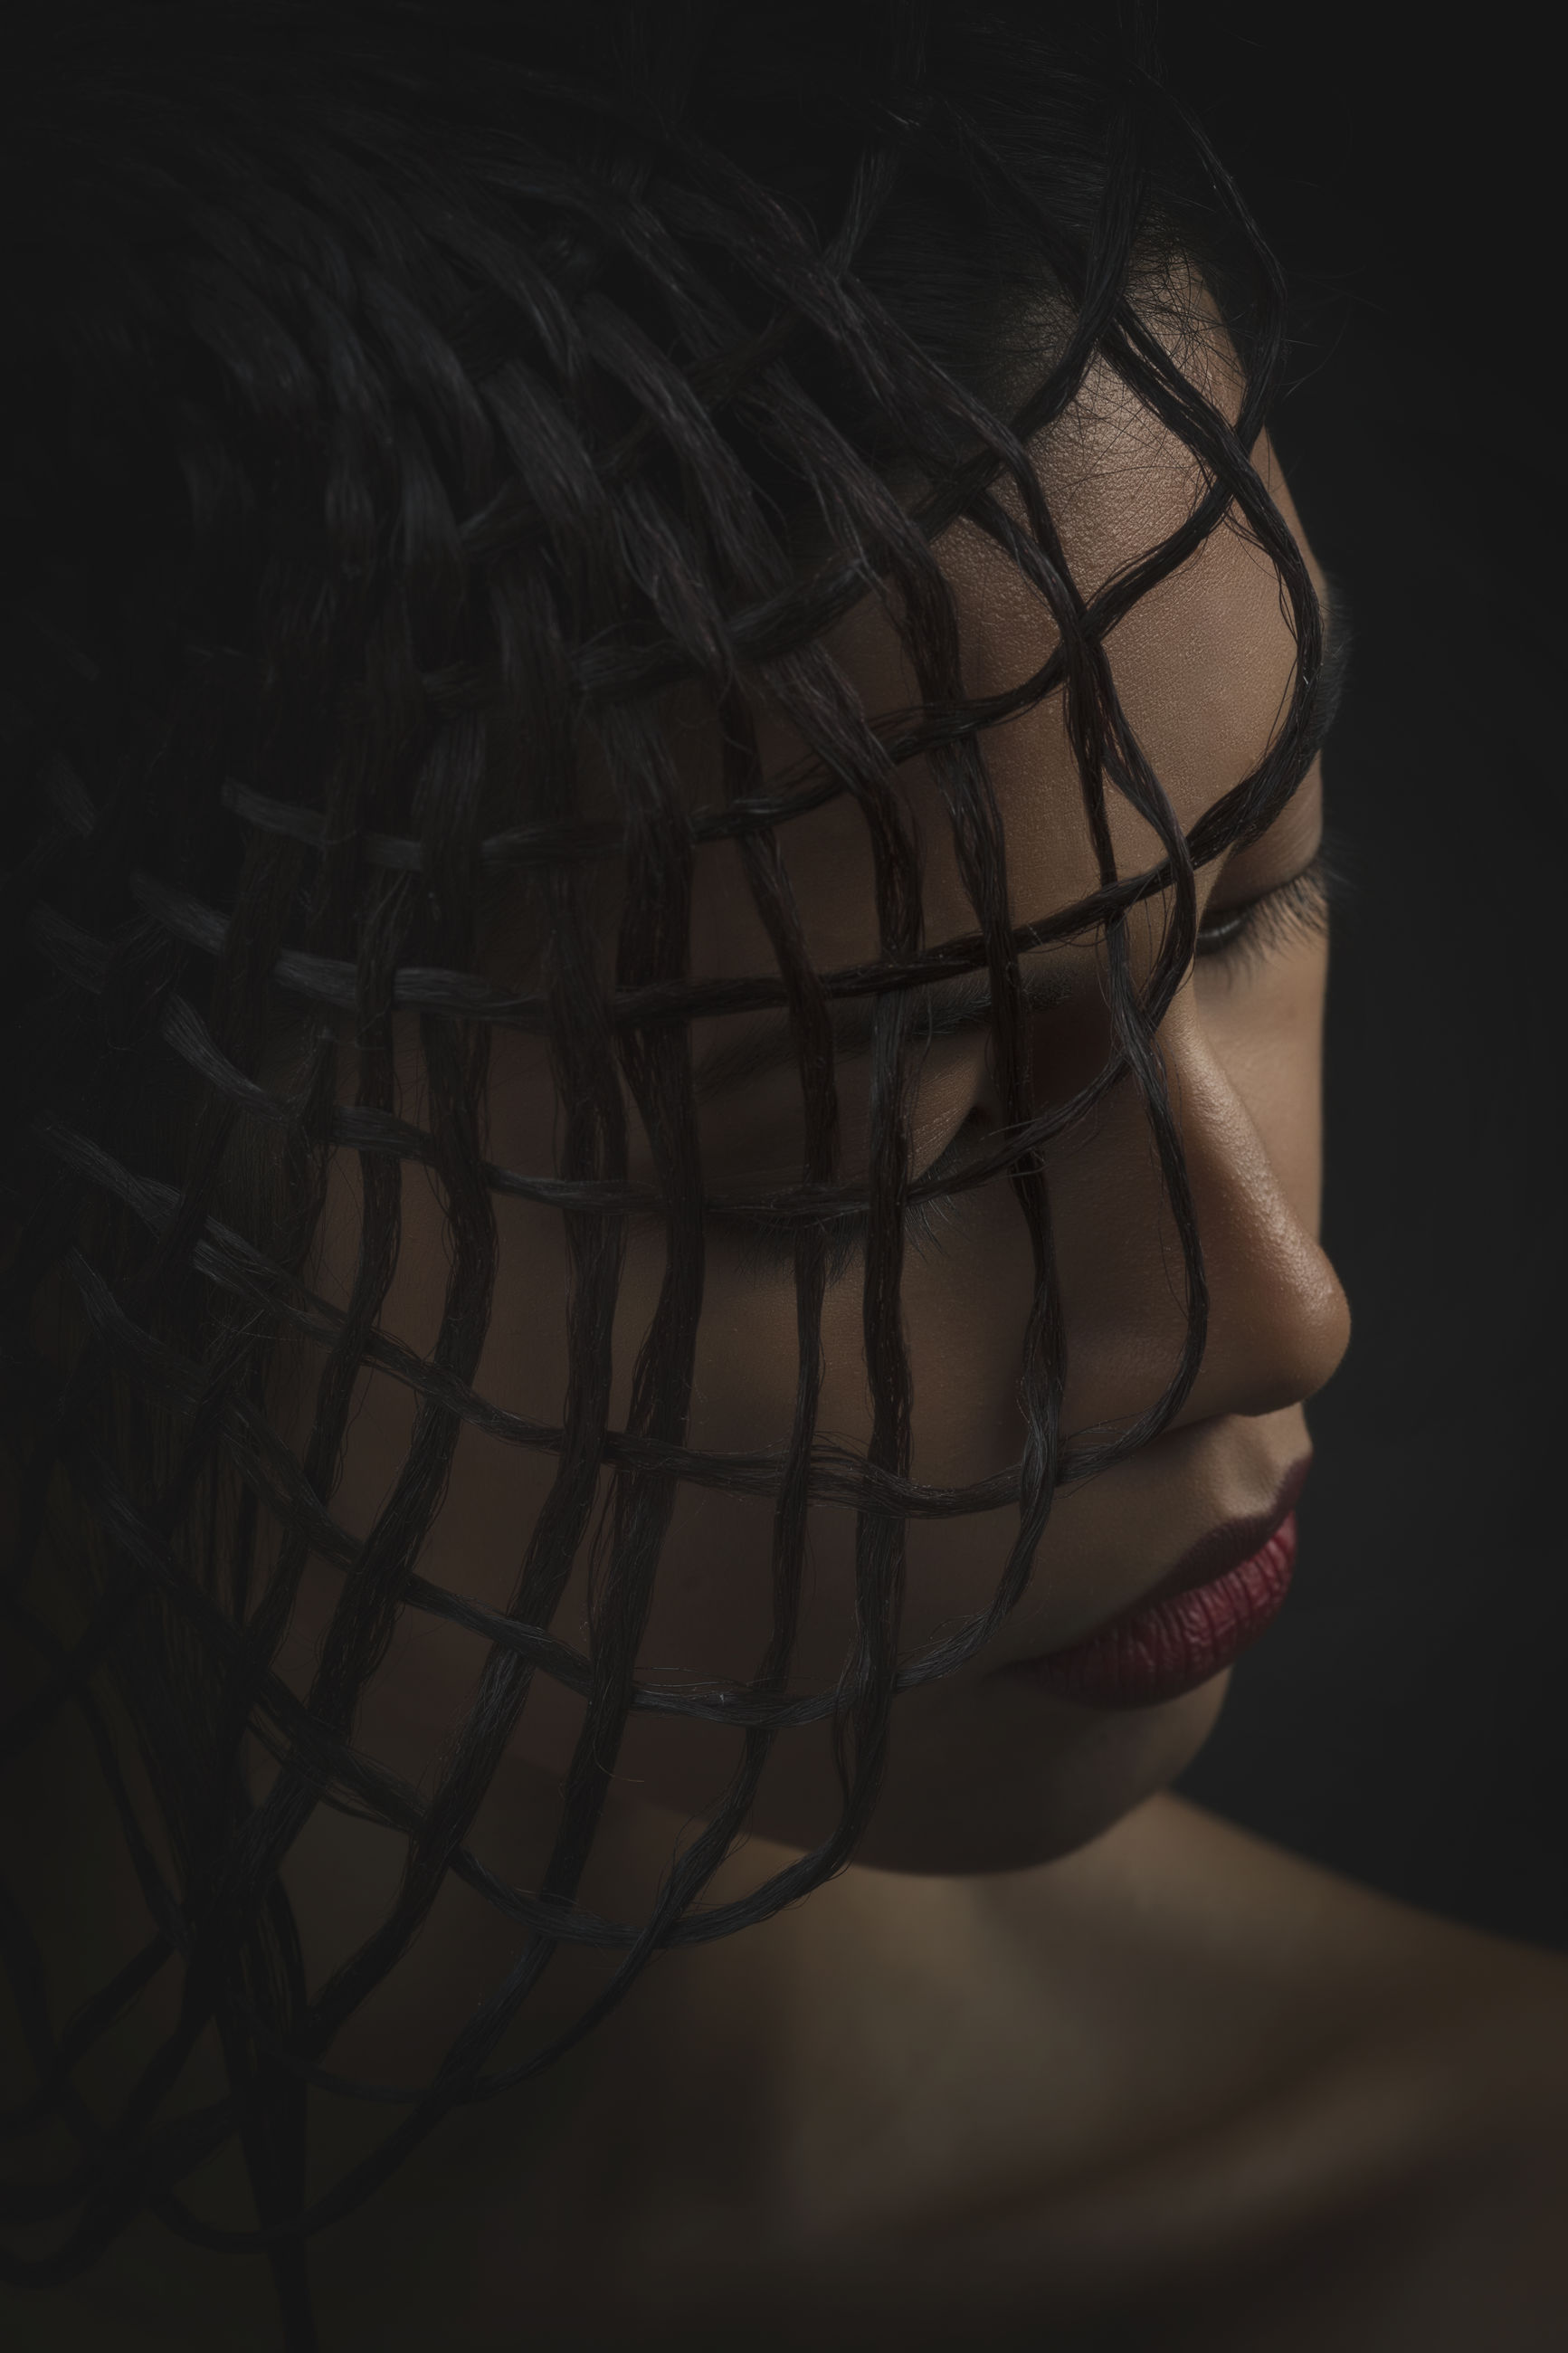 Close-up of young woman with hairstyle against black background